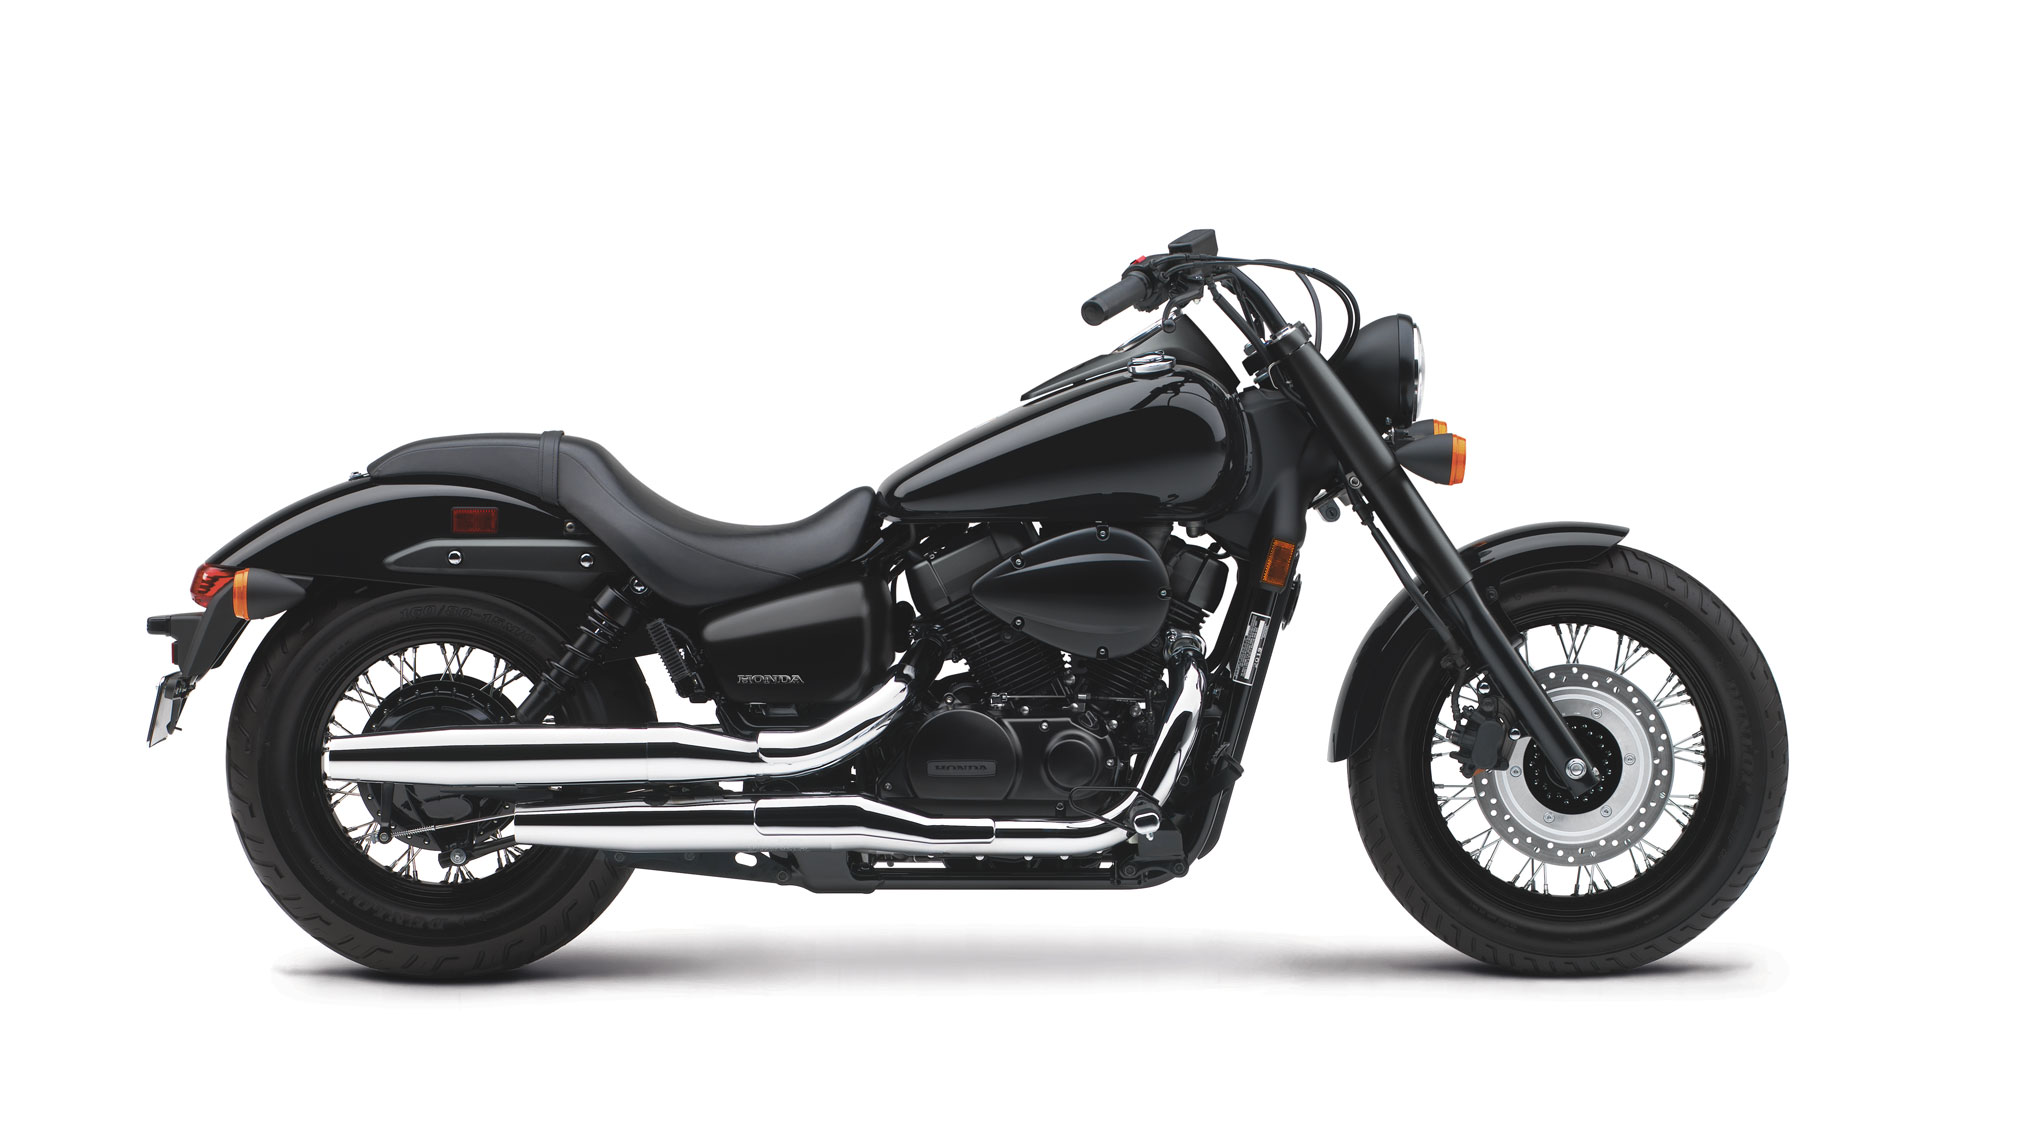 2019 Honda Shadow Phantom